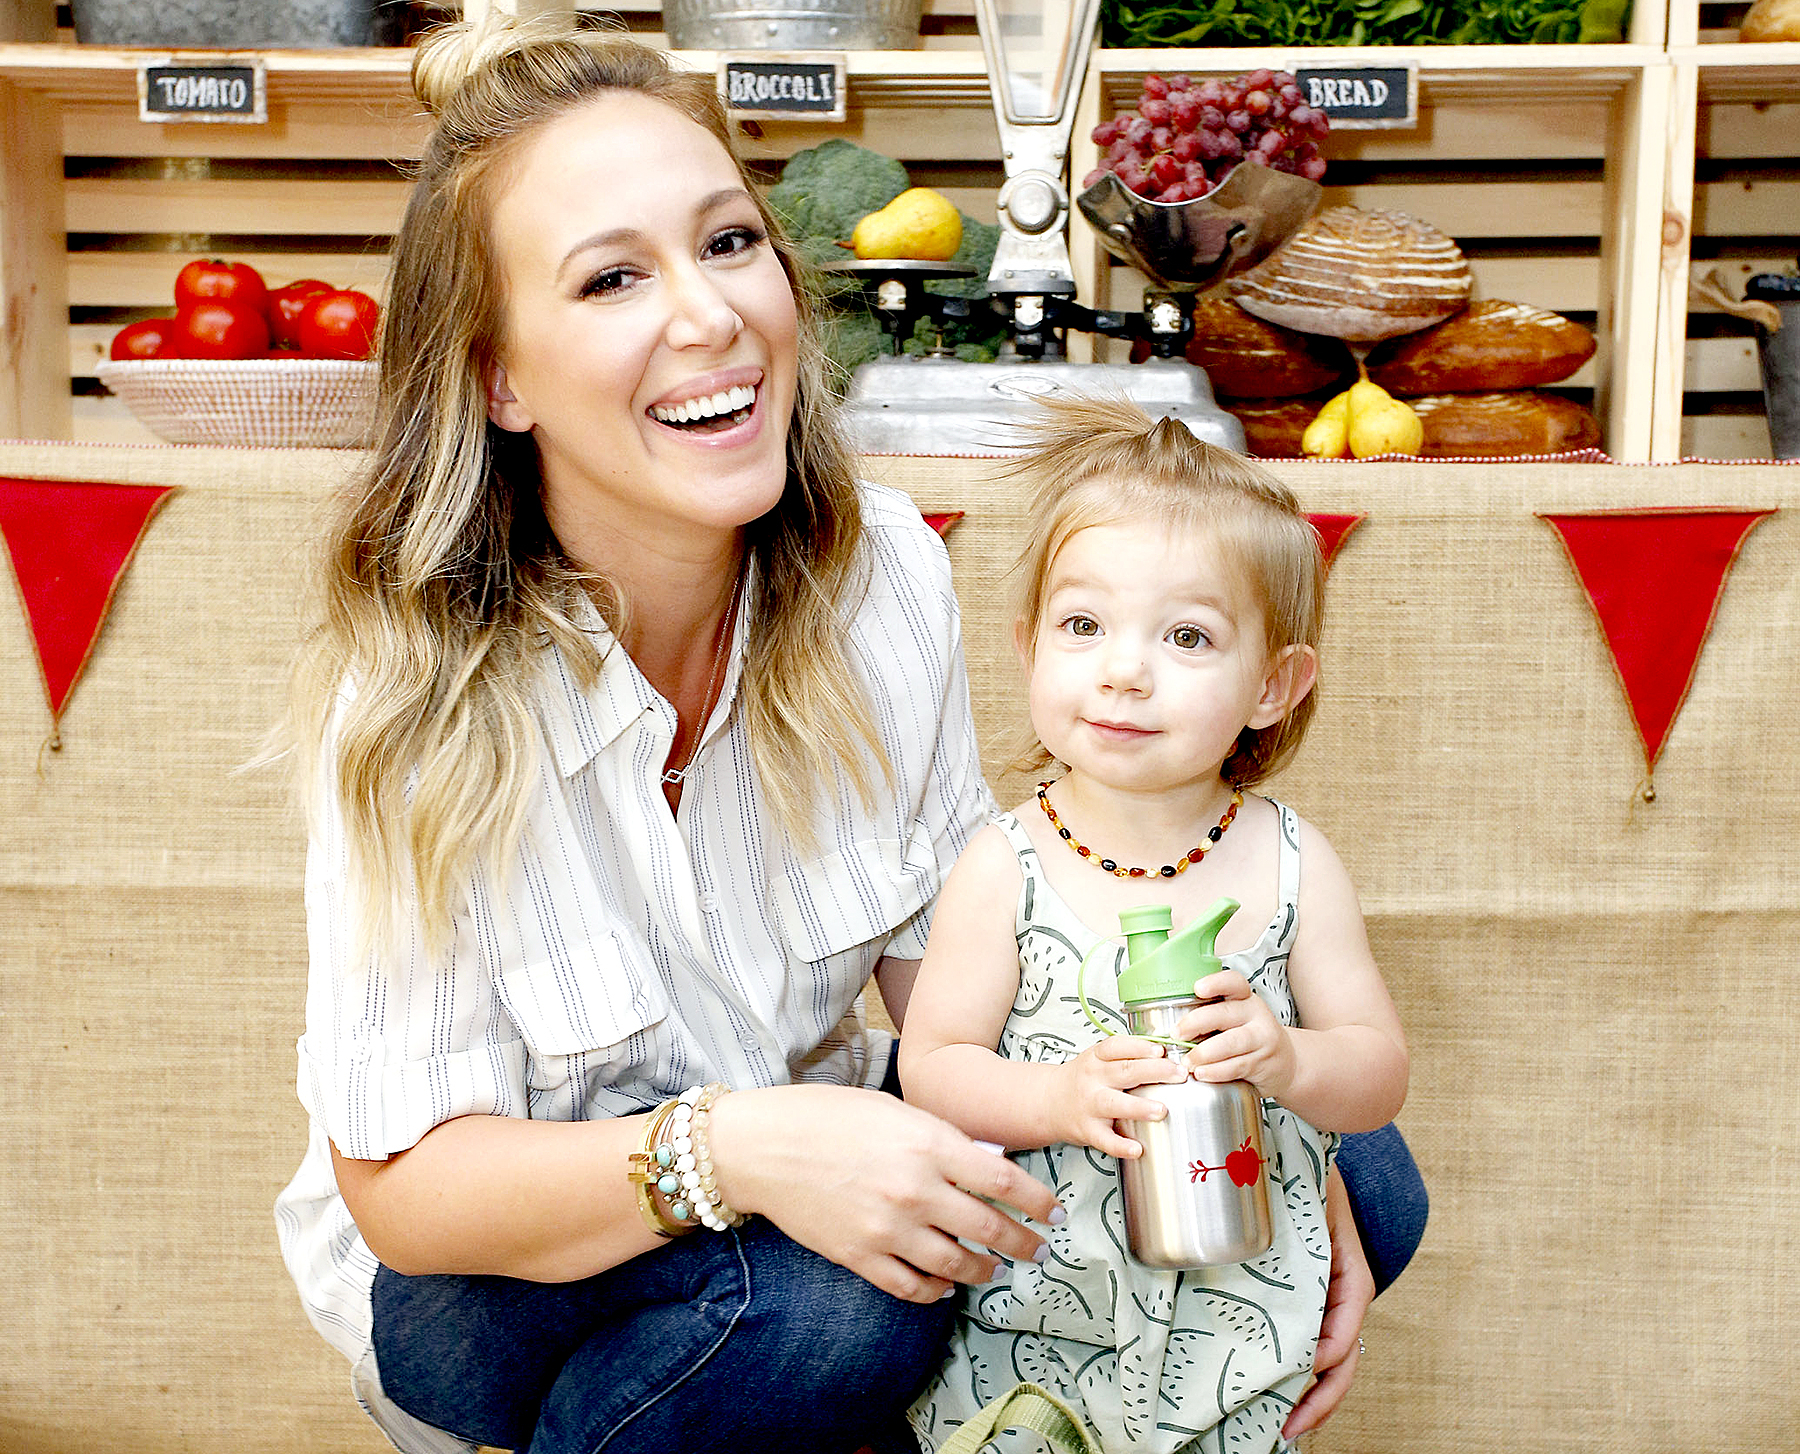 Haylie Duff and daughter Ryan Ava Rosenberg attend Haylie Duff Hosts Applegate's Sandwich Soiree at AU FUDGE on September 29, 2016 in West Hollywood, California.